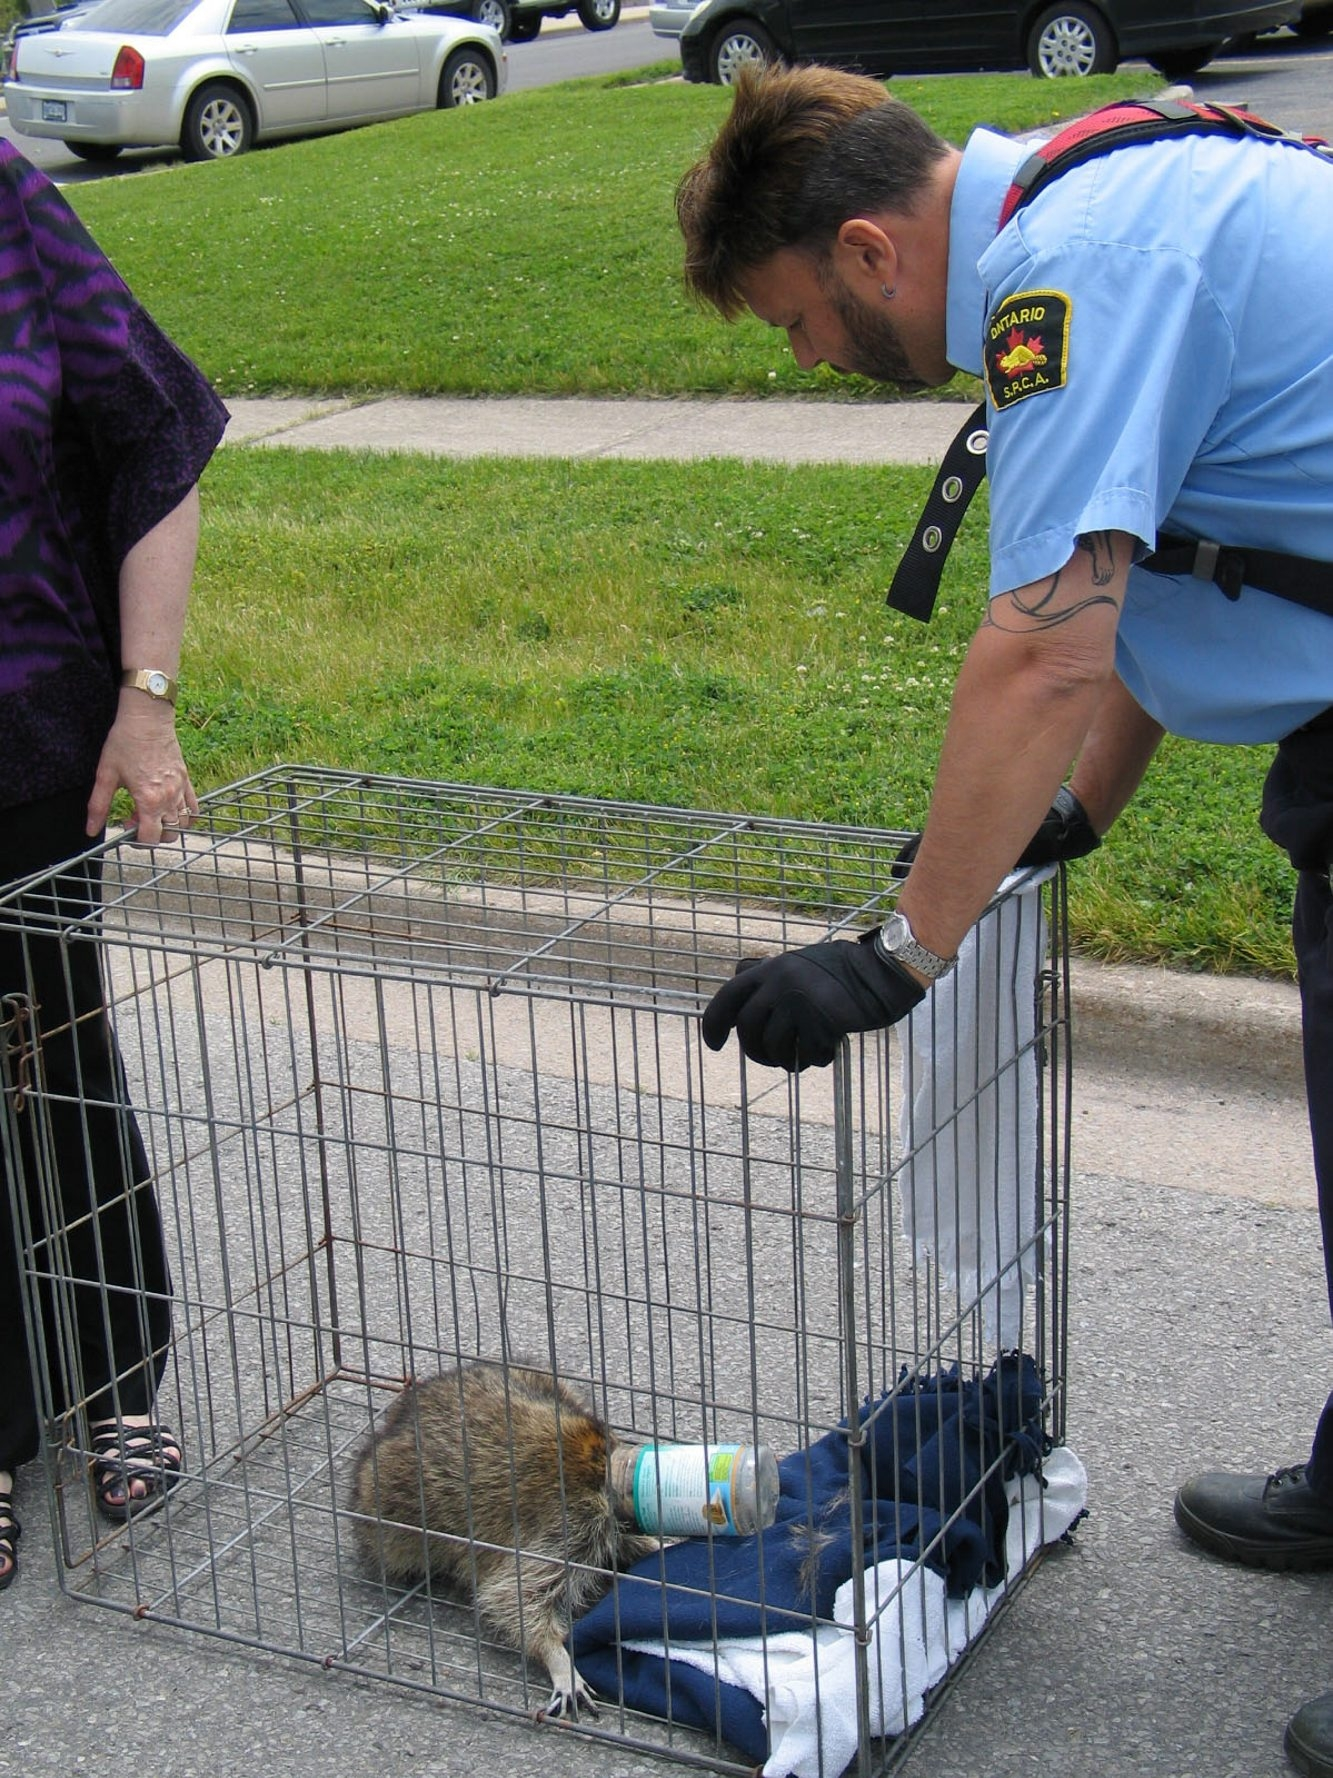 The Fort Erie, Ont., Fire Department and SPCA rescued this raccoon that had its head stuck in a peanut butter jar.